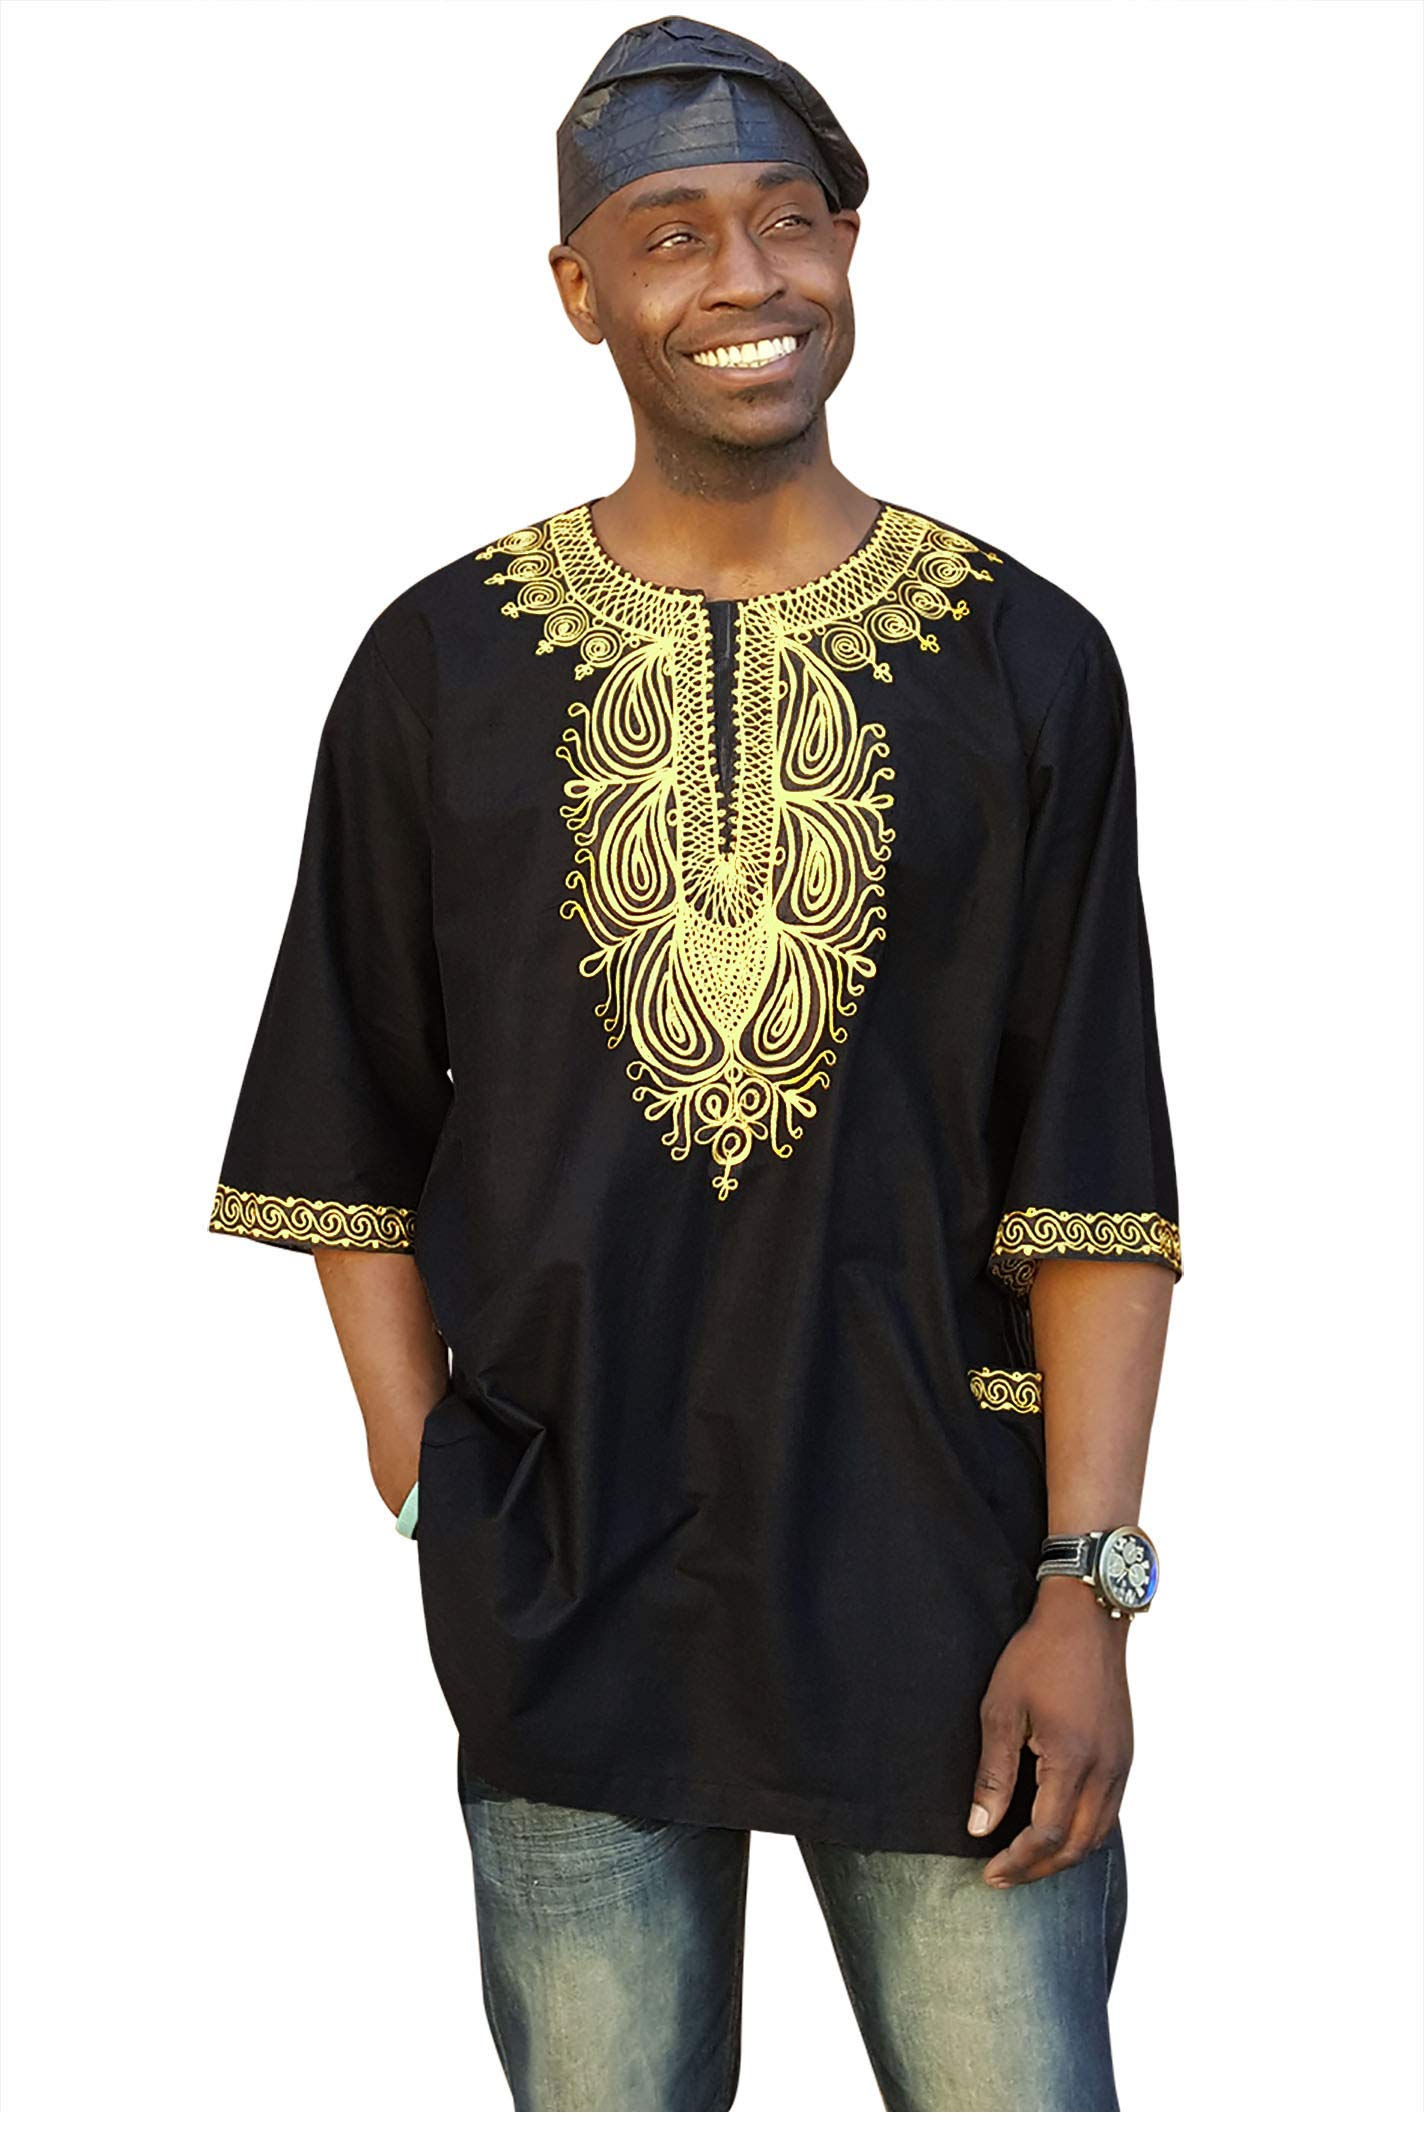 Dupsie's Black Cotton Dashiki African Shirt with Gold Embroidery (7XL)